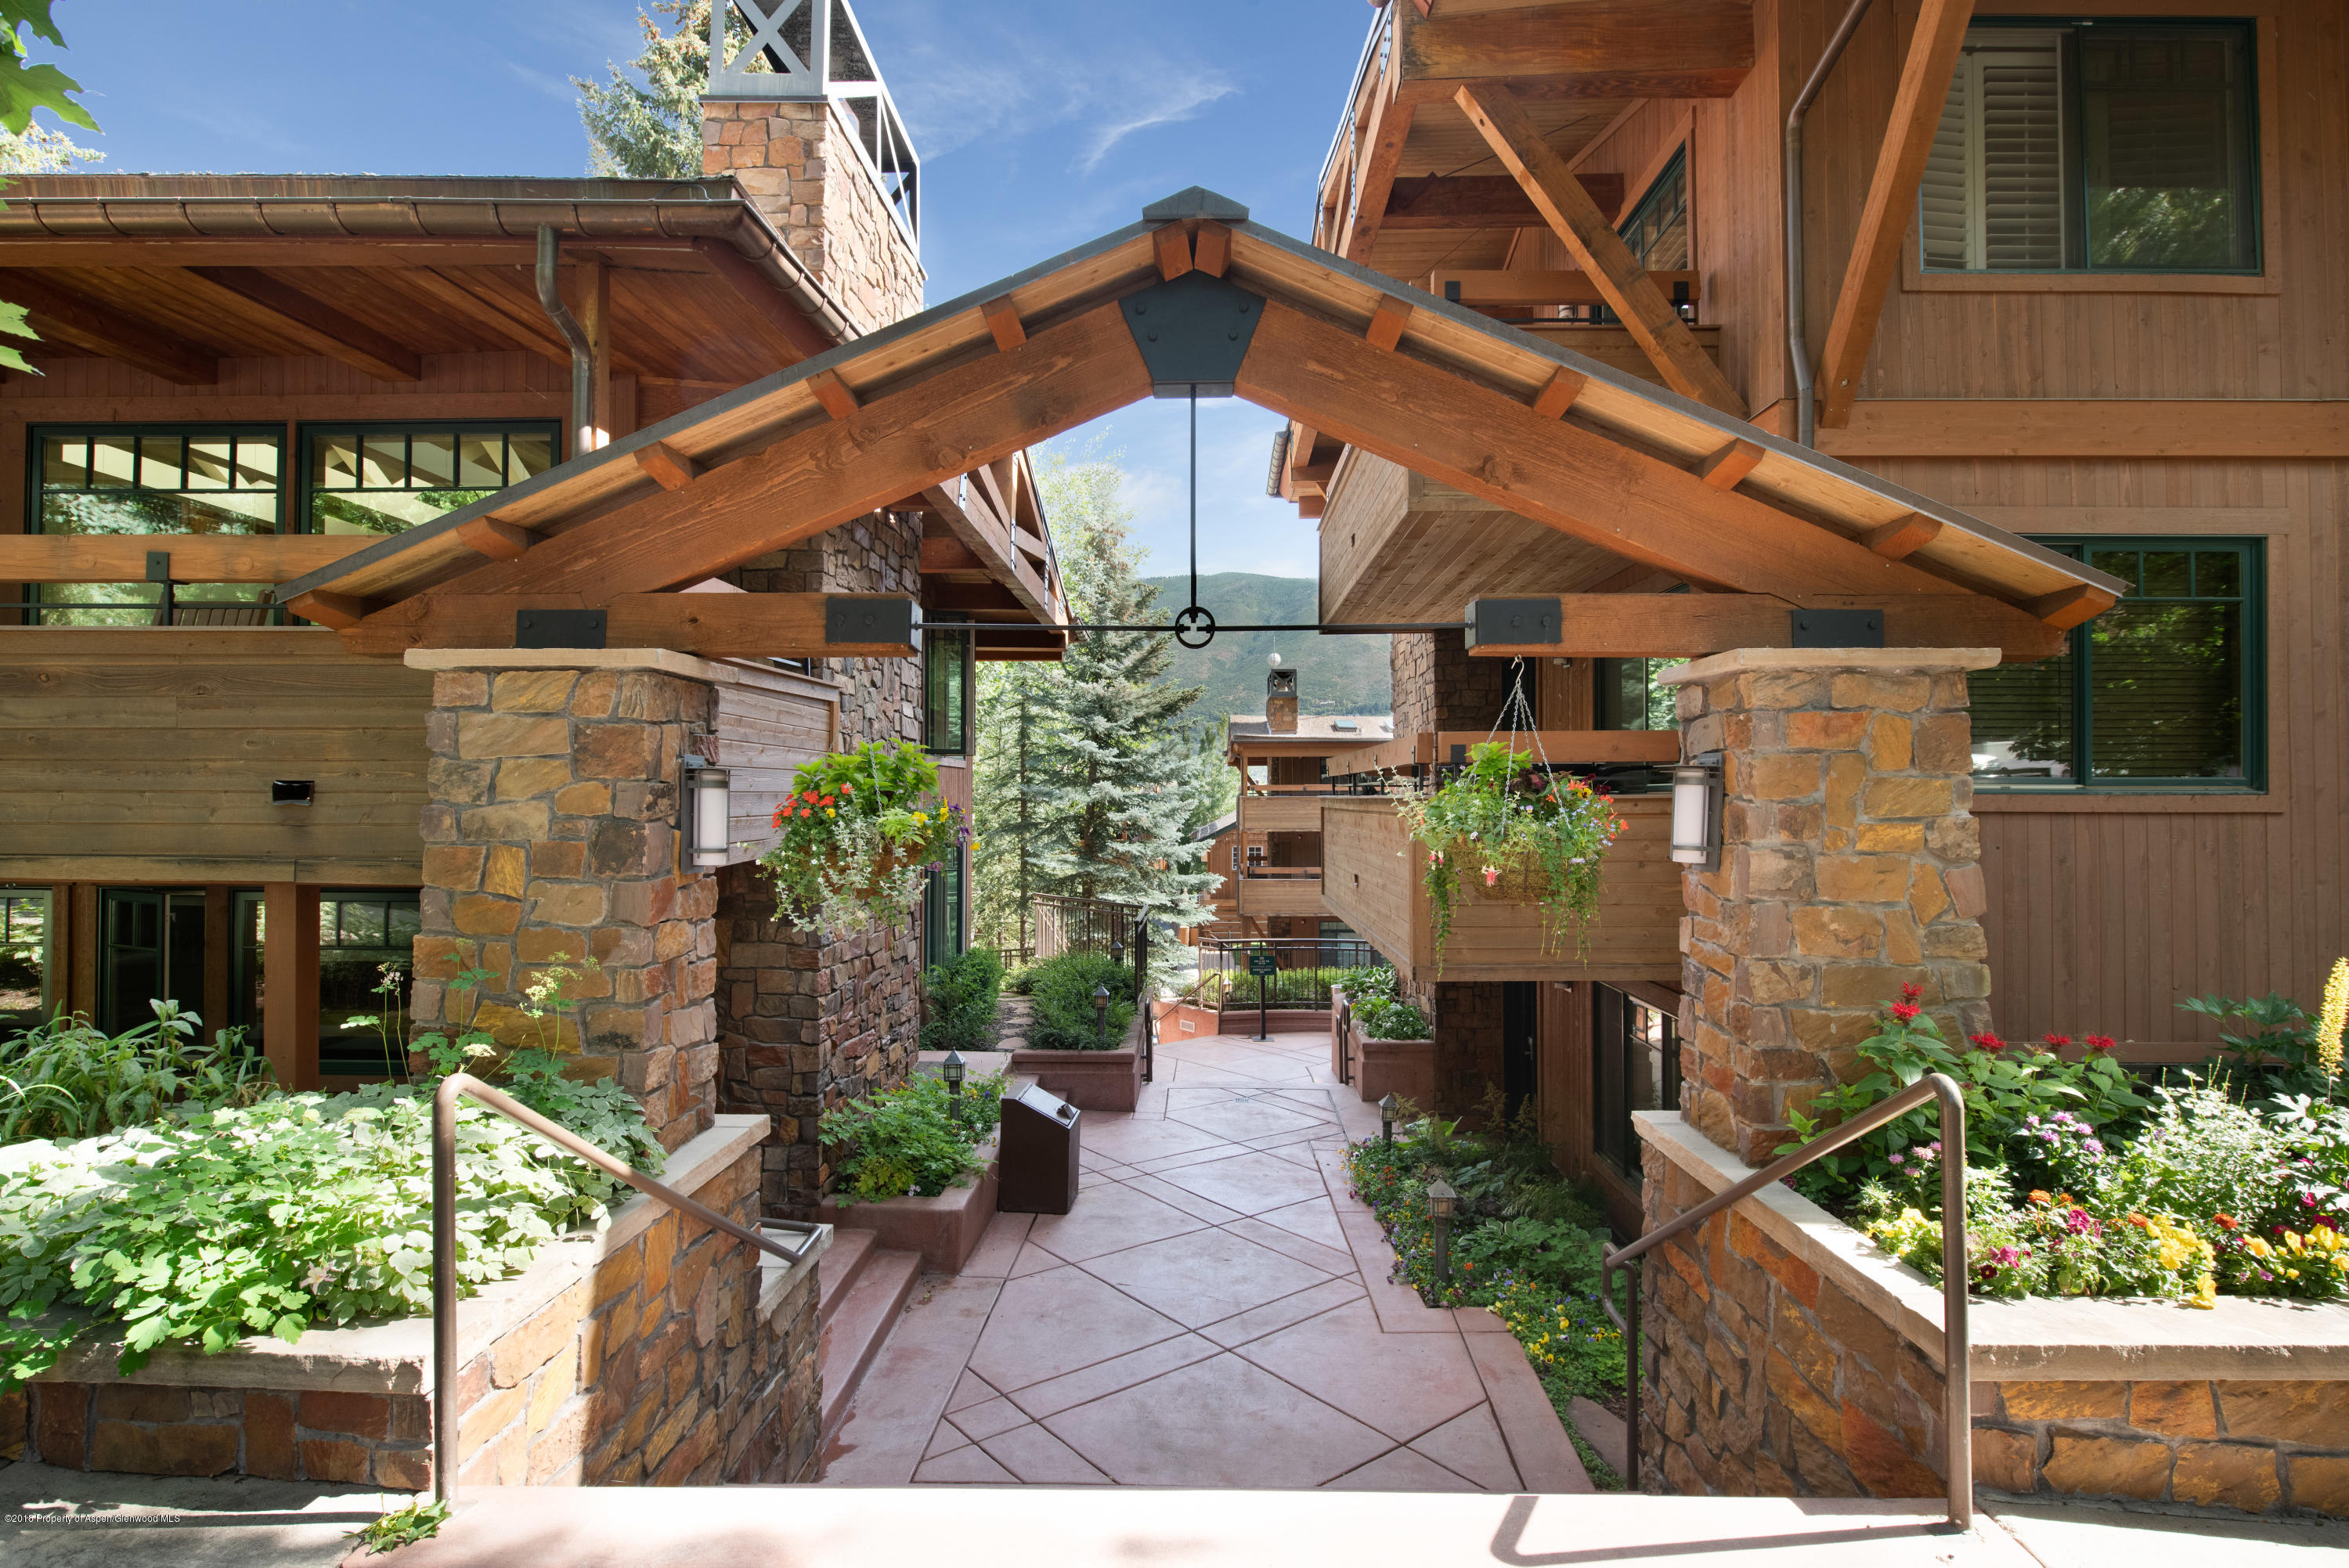 718 S Mill Street, 13 - Aspen, Colorado